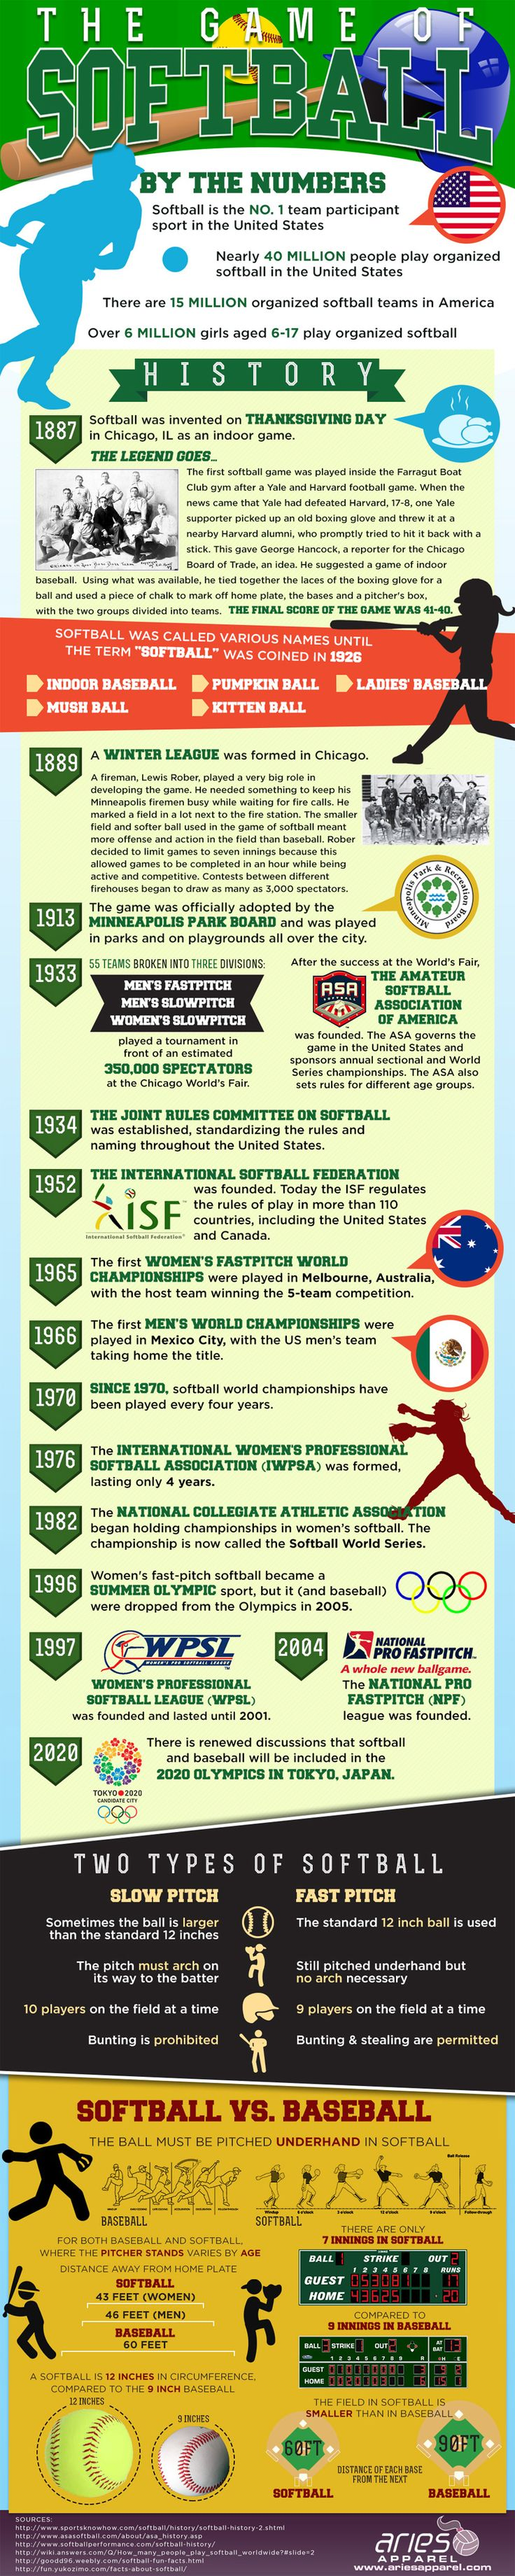 The History of Softball